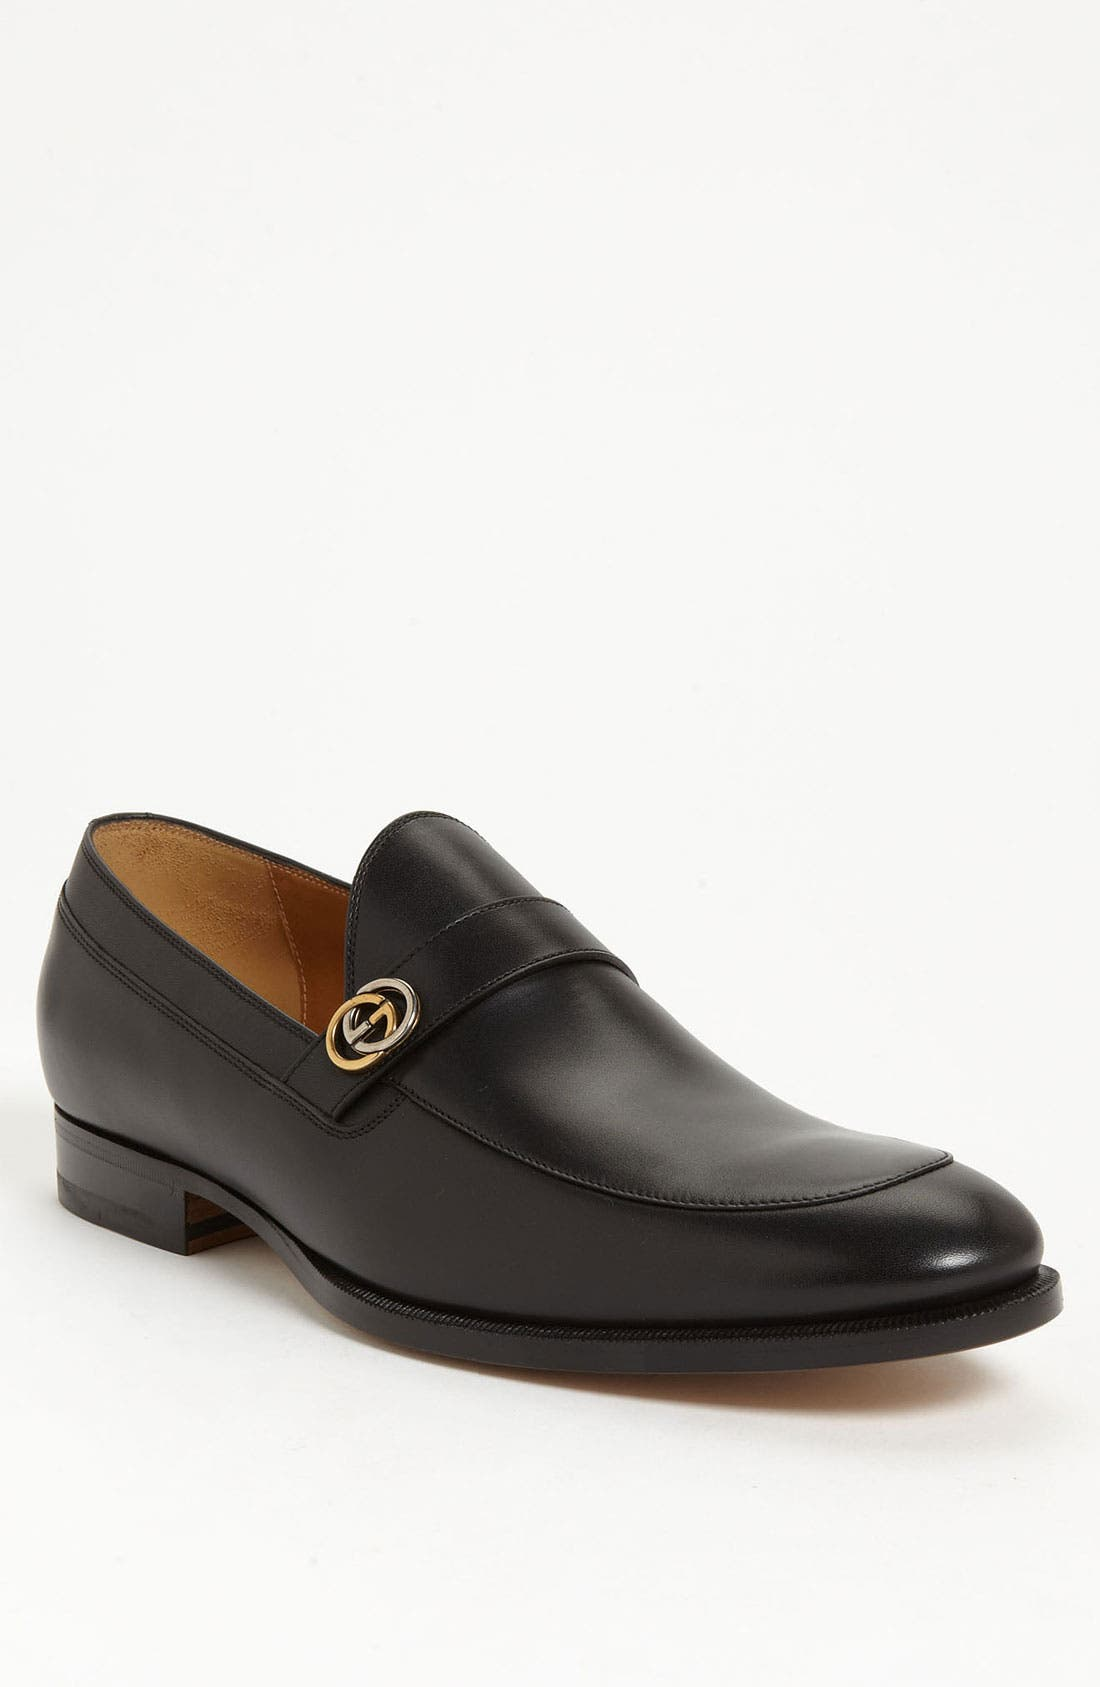 Alternate Image 1 Selected - Gucci 'Bouts' Loafer